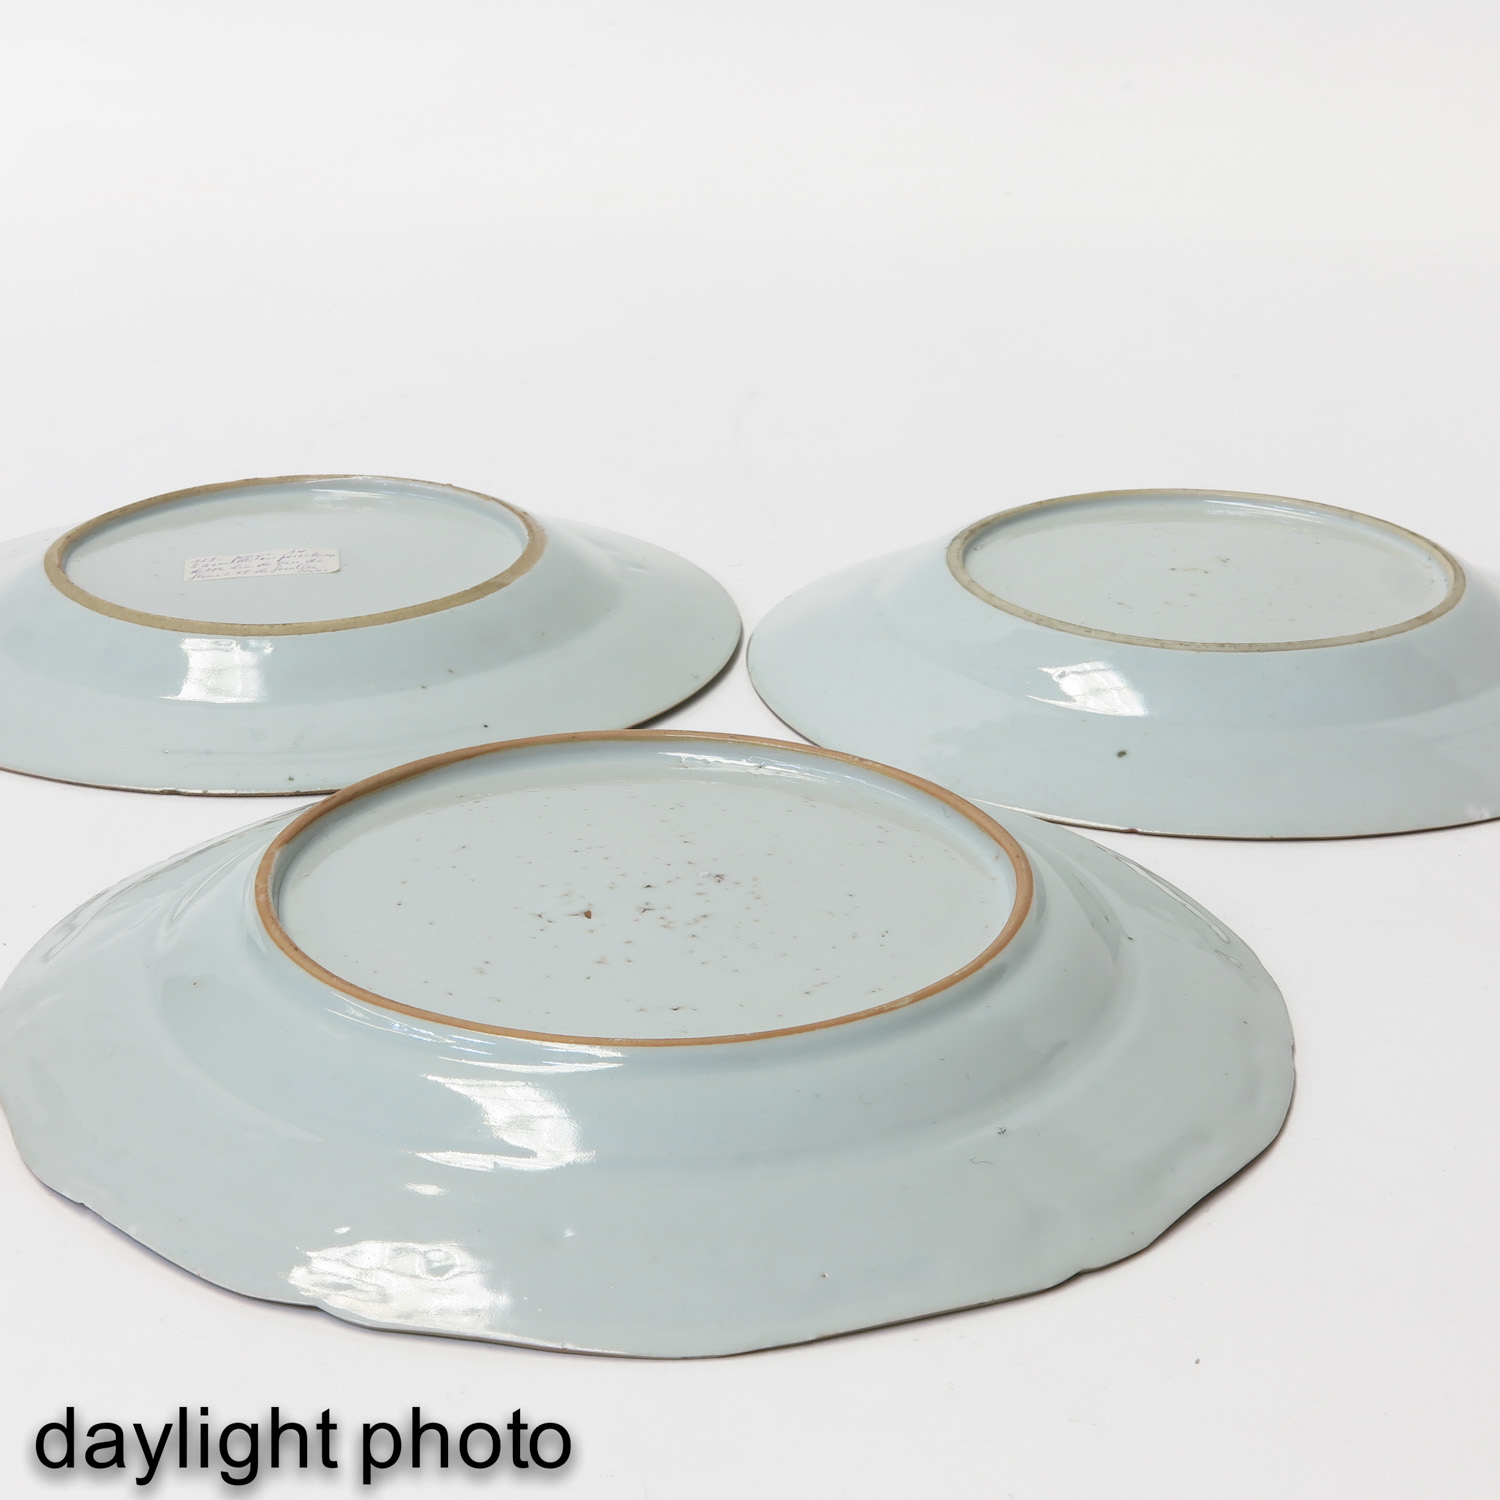 A Collection of 5 Famille Rose Plates - Image 8 of 10